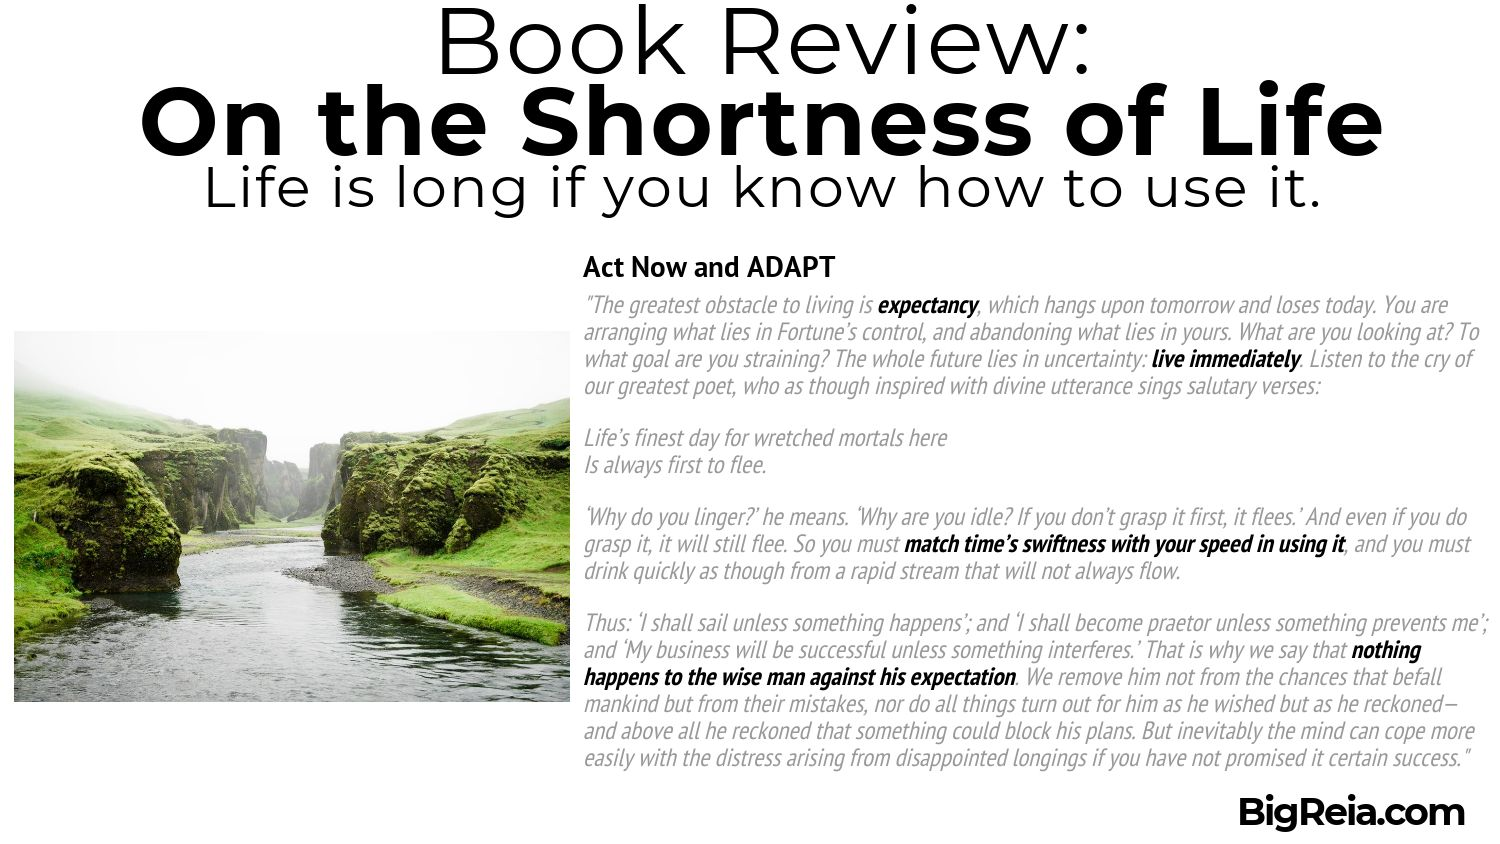 Seneca book review act now and adapt quote